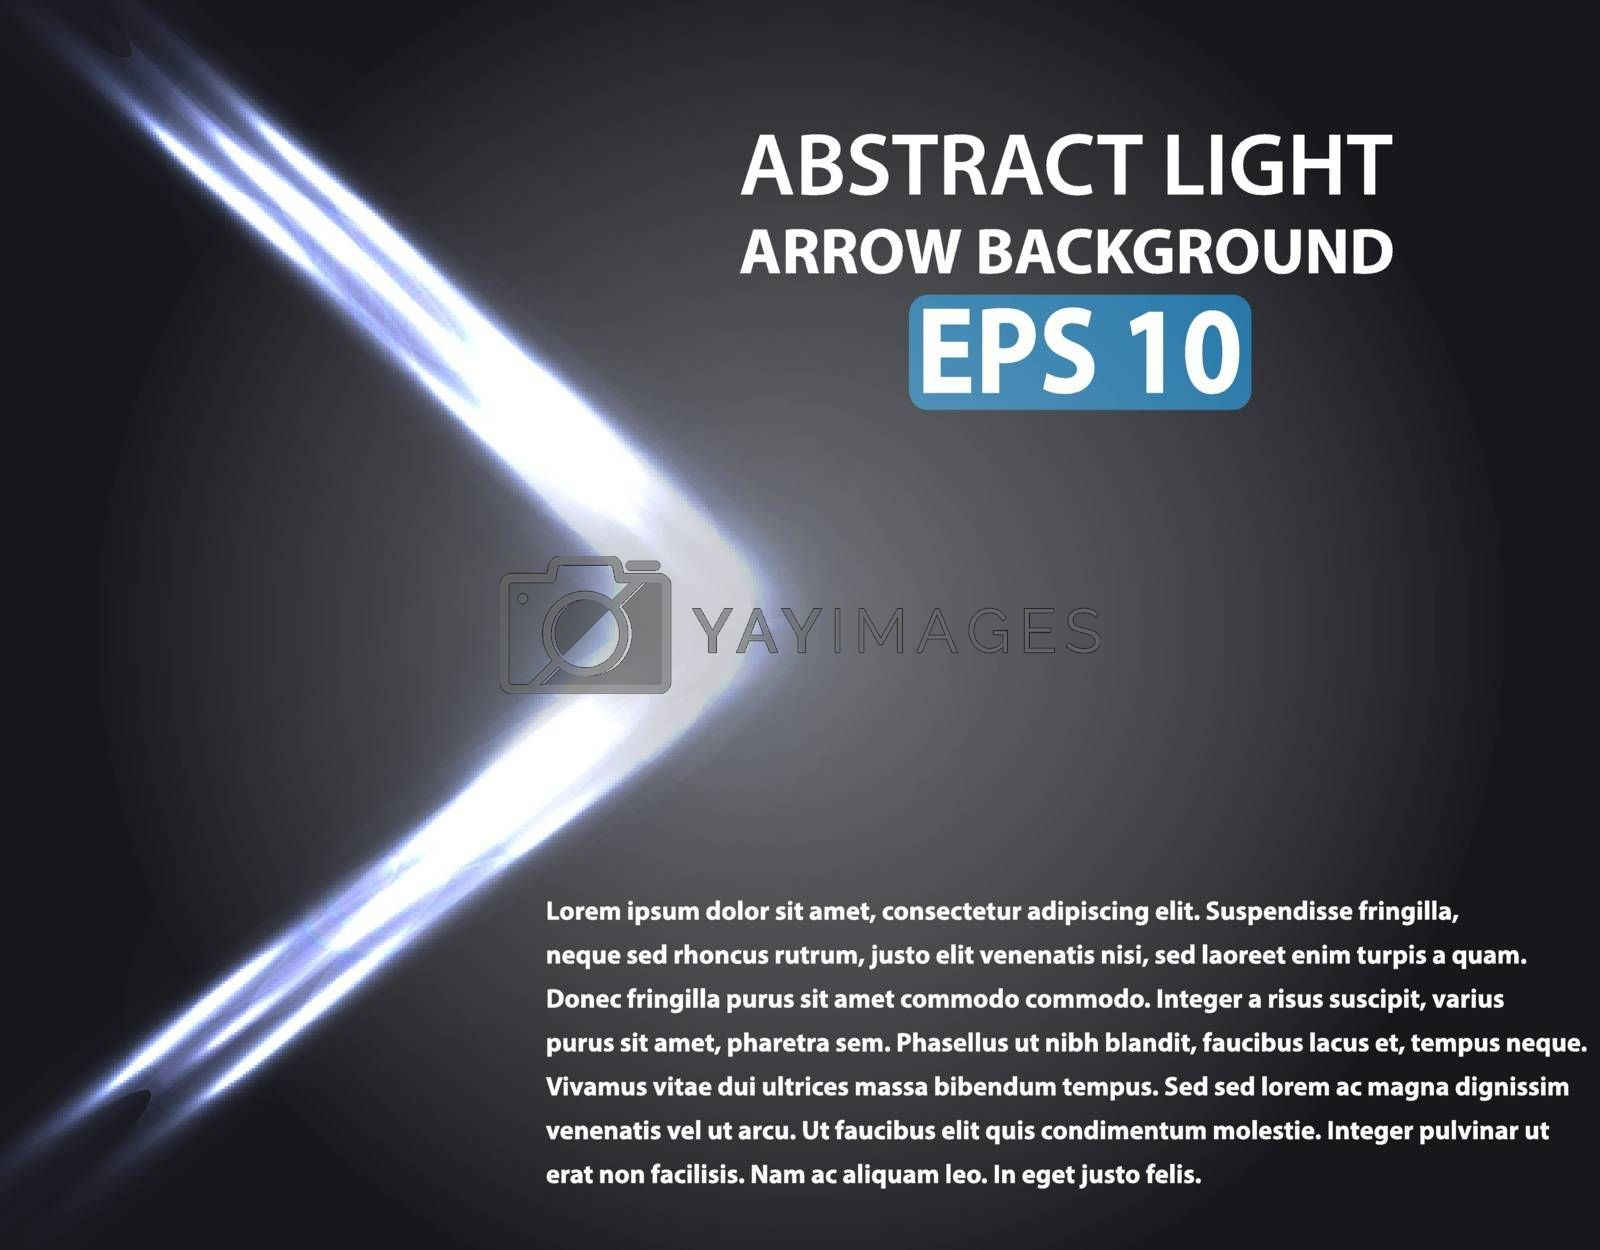 Abstract background with light arrow. Blue elements. Vector illustration, EPS 10